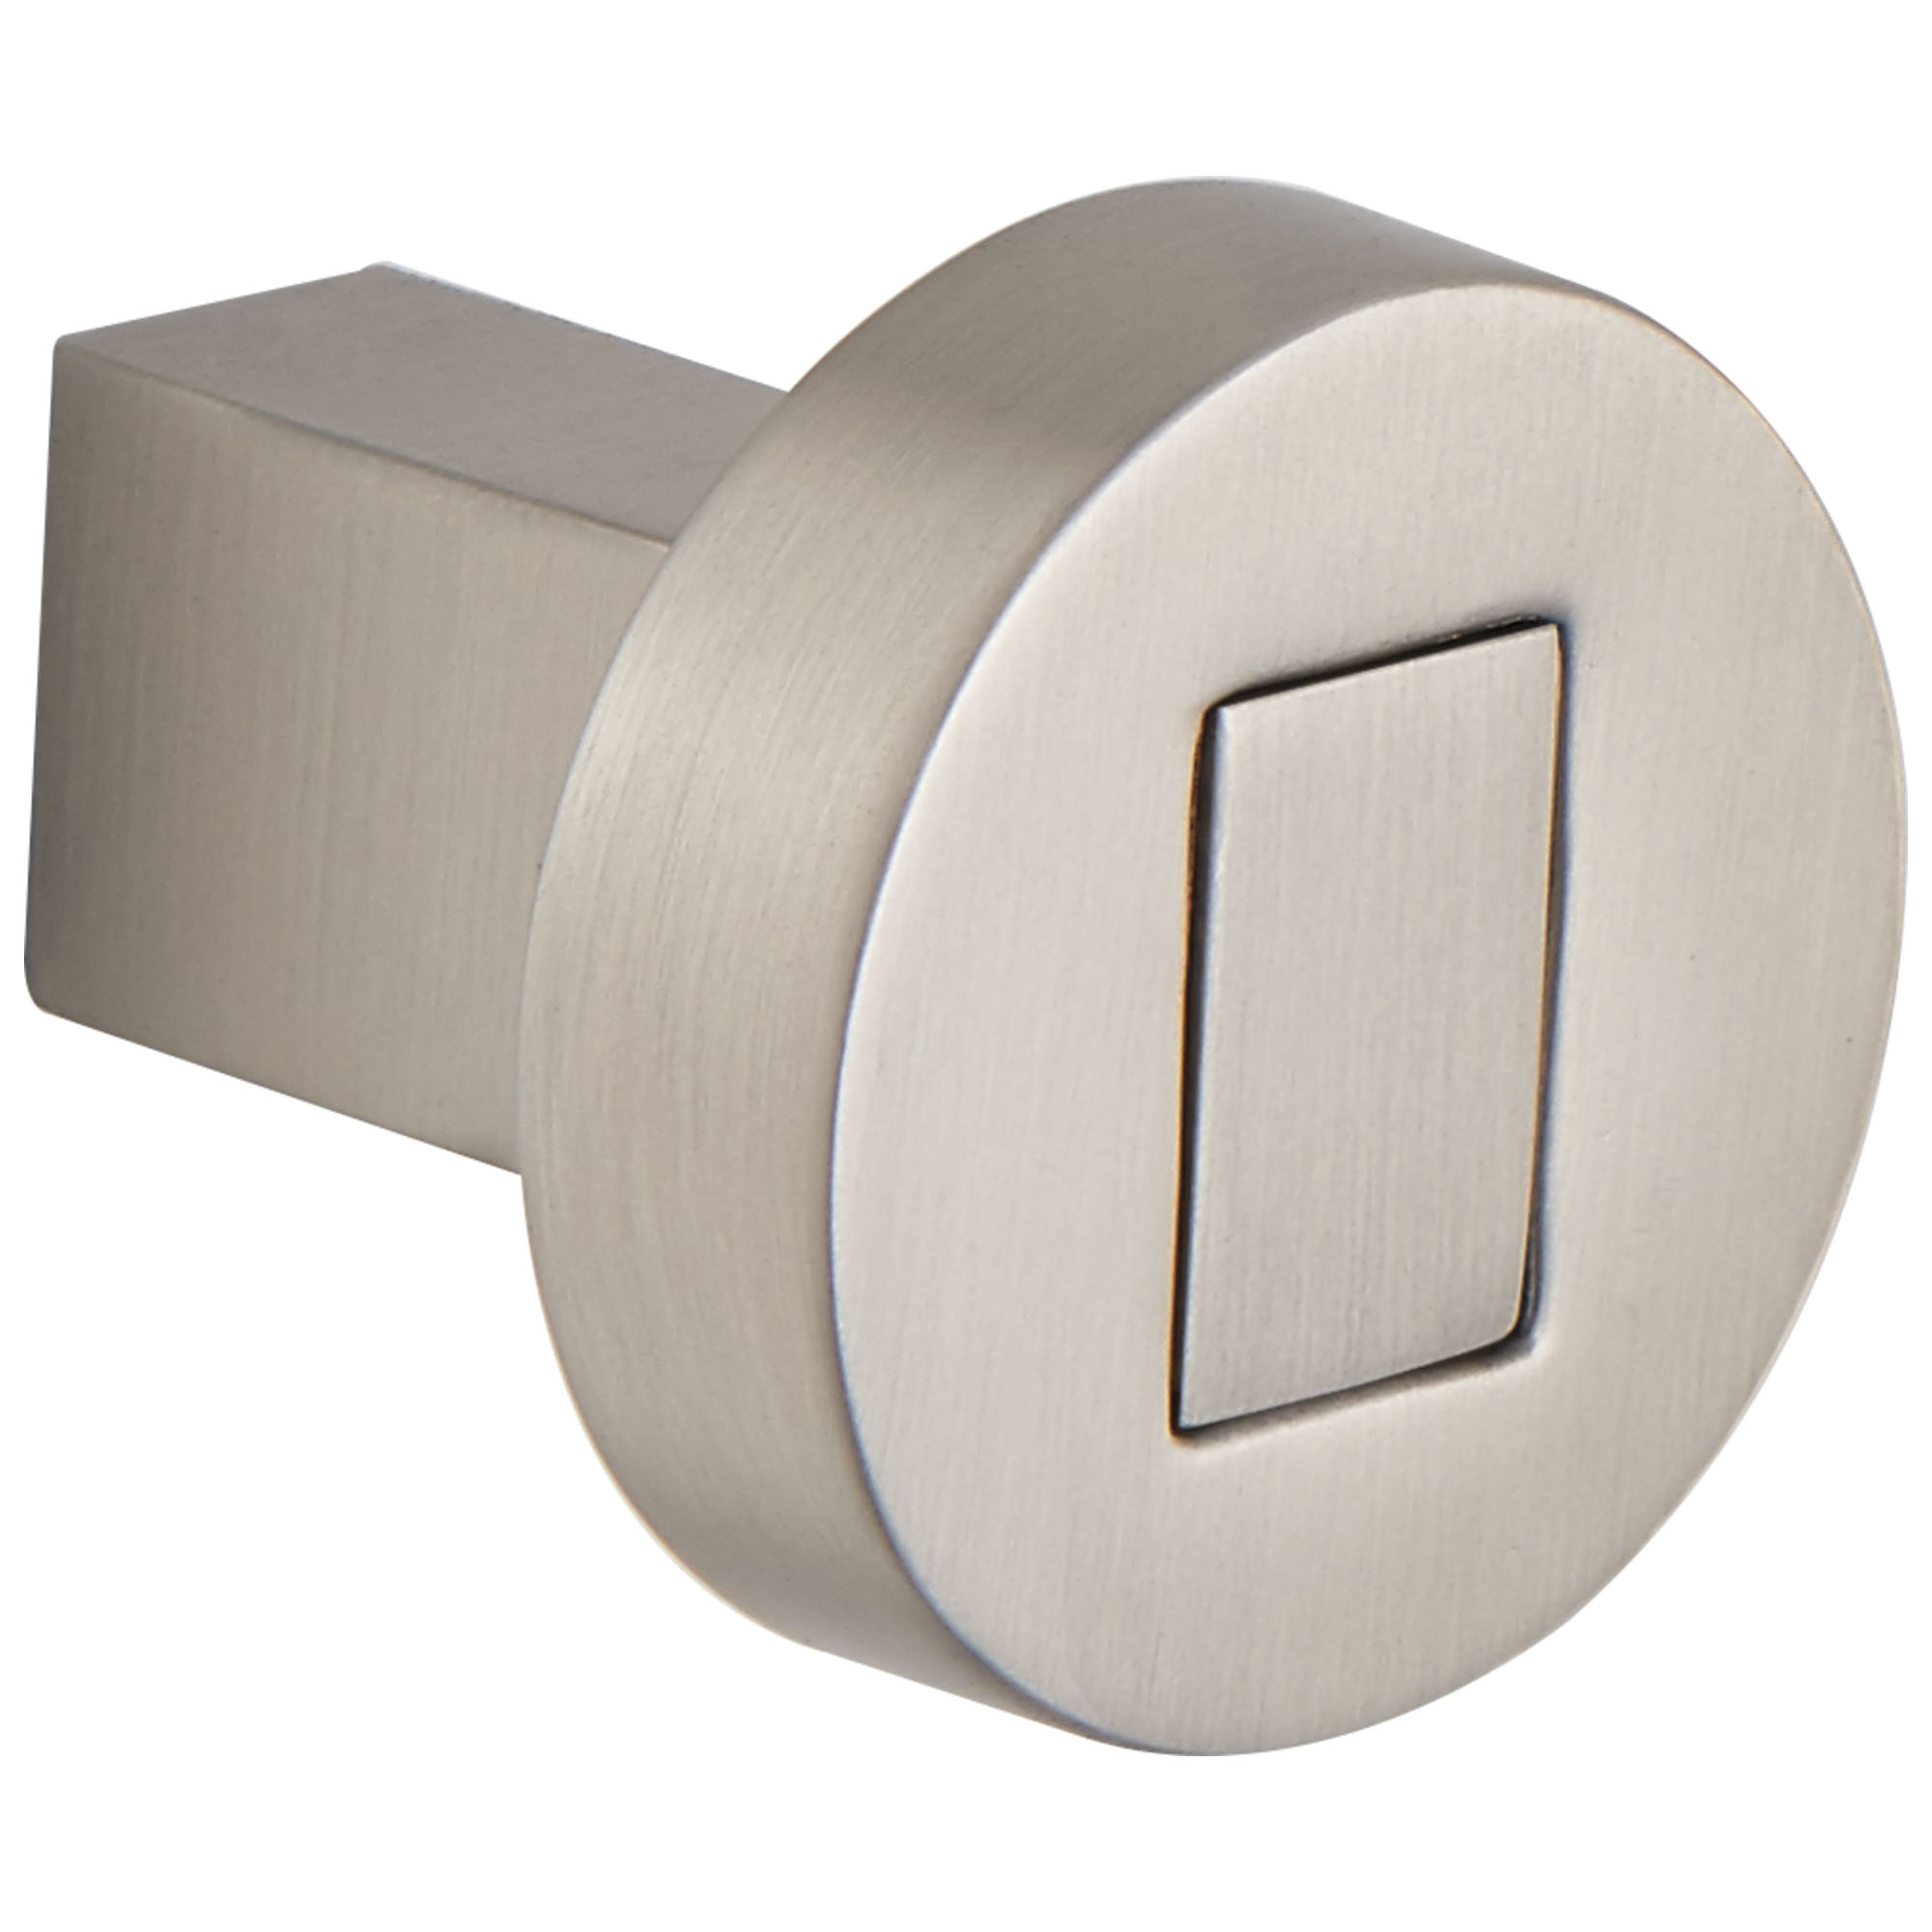 Brizo 699235-NK Litze Drawer Knob - Luxe Nickel